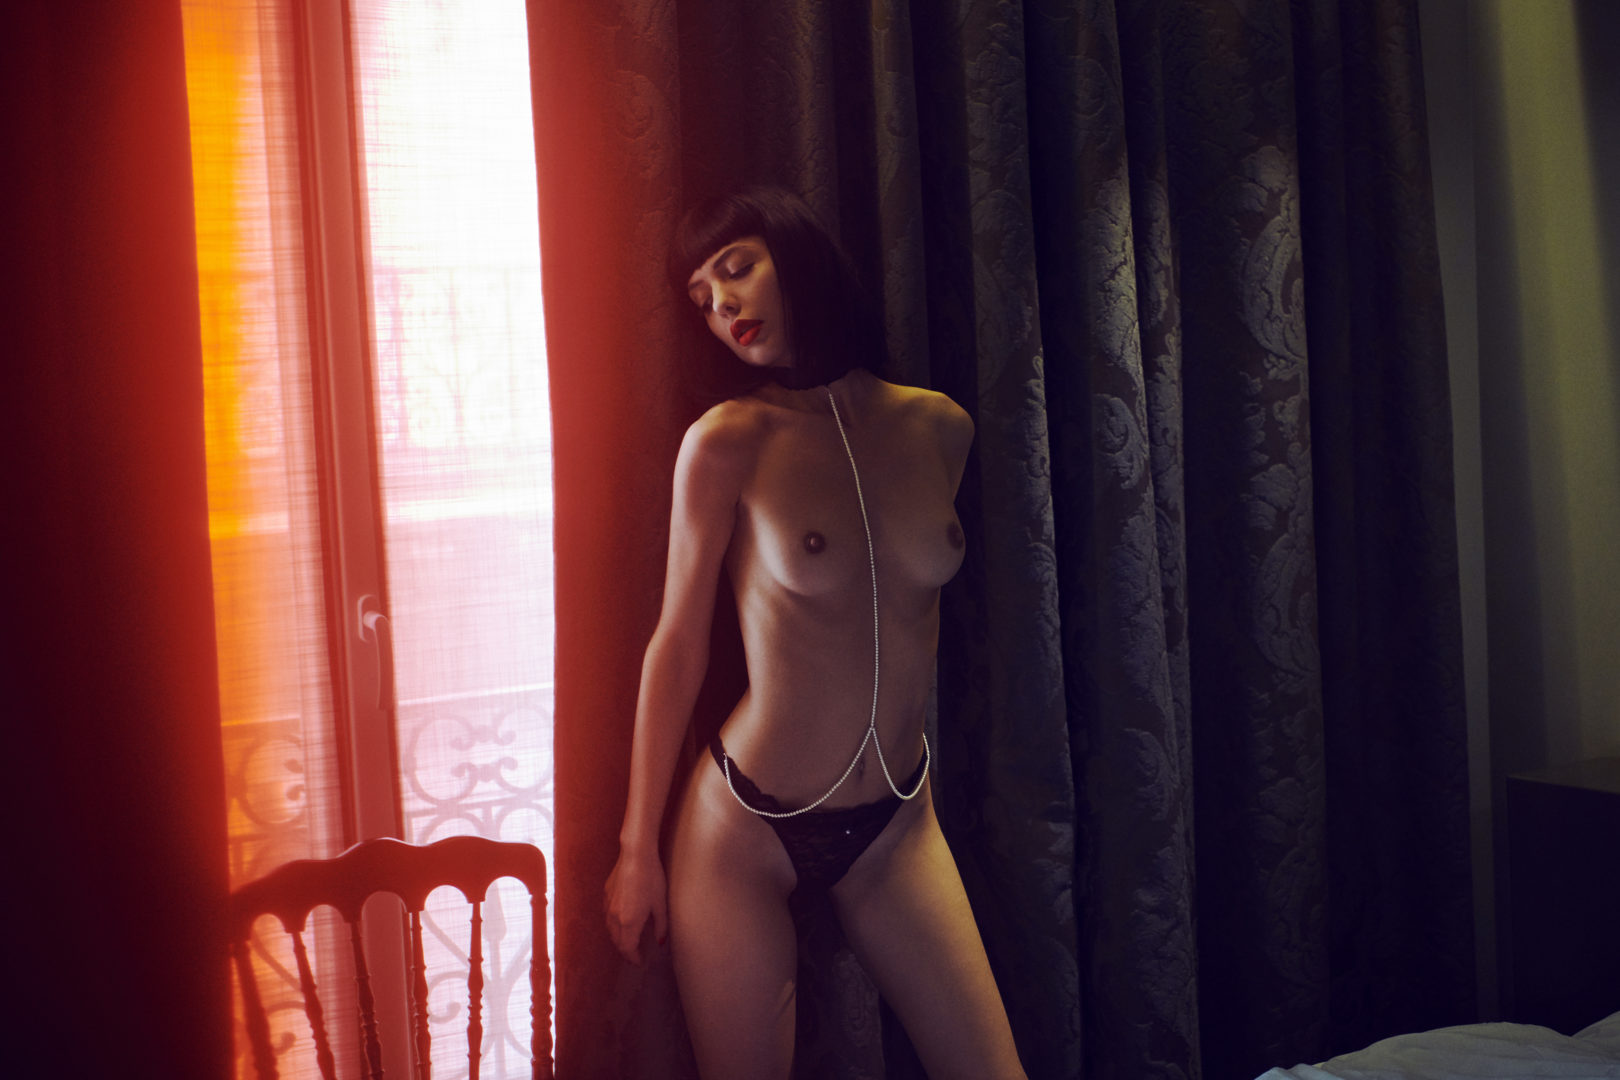 girl in lingerie in hotel room